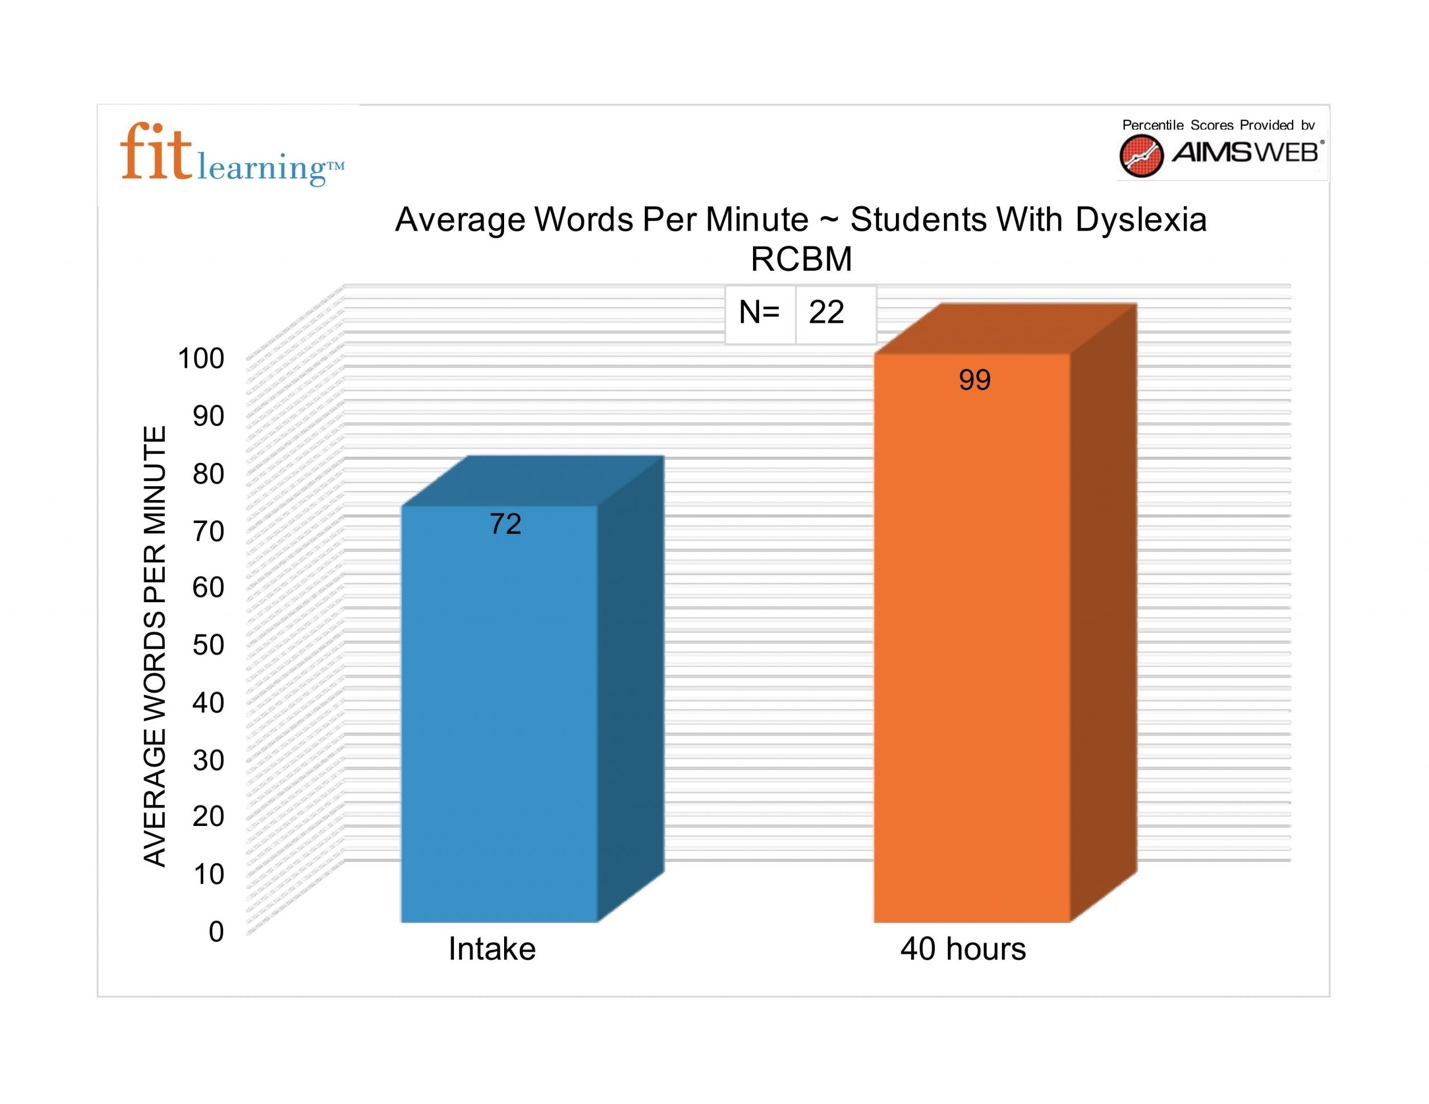 A graph shows the average words per minute for students with dyslexia. The intake group scored 72 average words per minute, while 40 hours scored 99. Fit Learning offers private school tutoring in St. Louis, MO. Contact a private tutor as an alternative to an expensive private school.